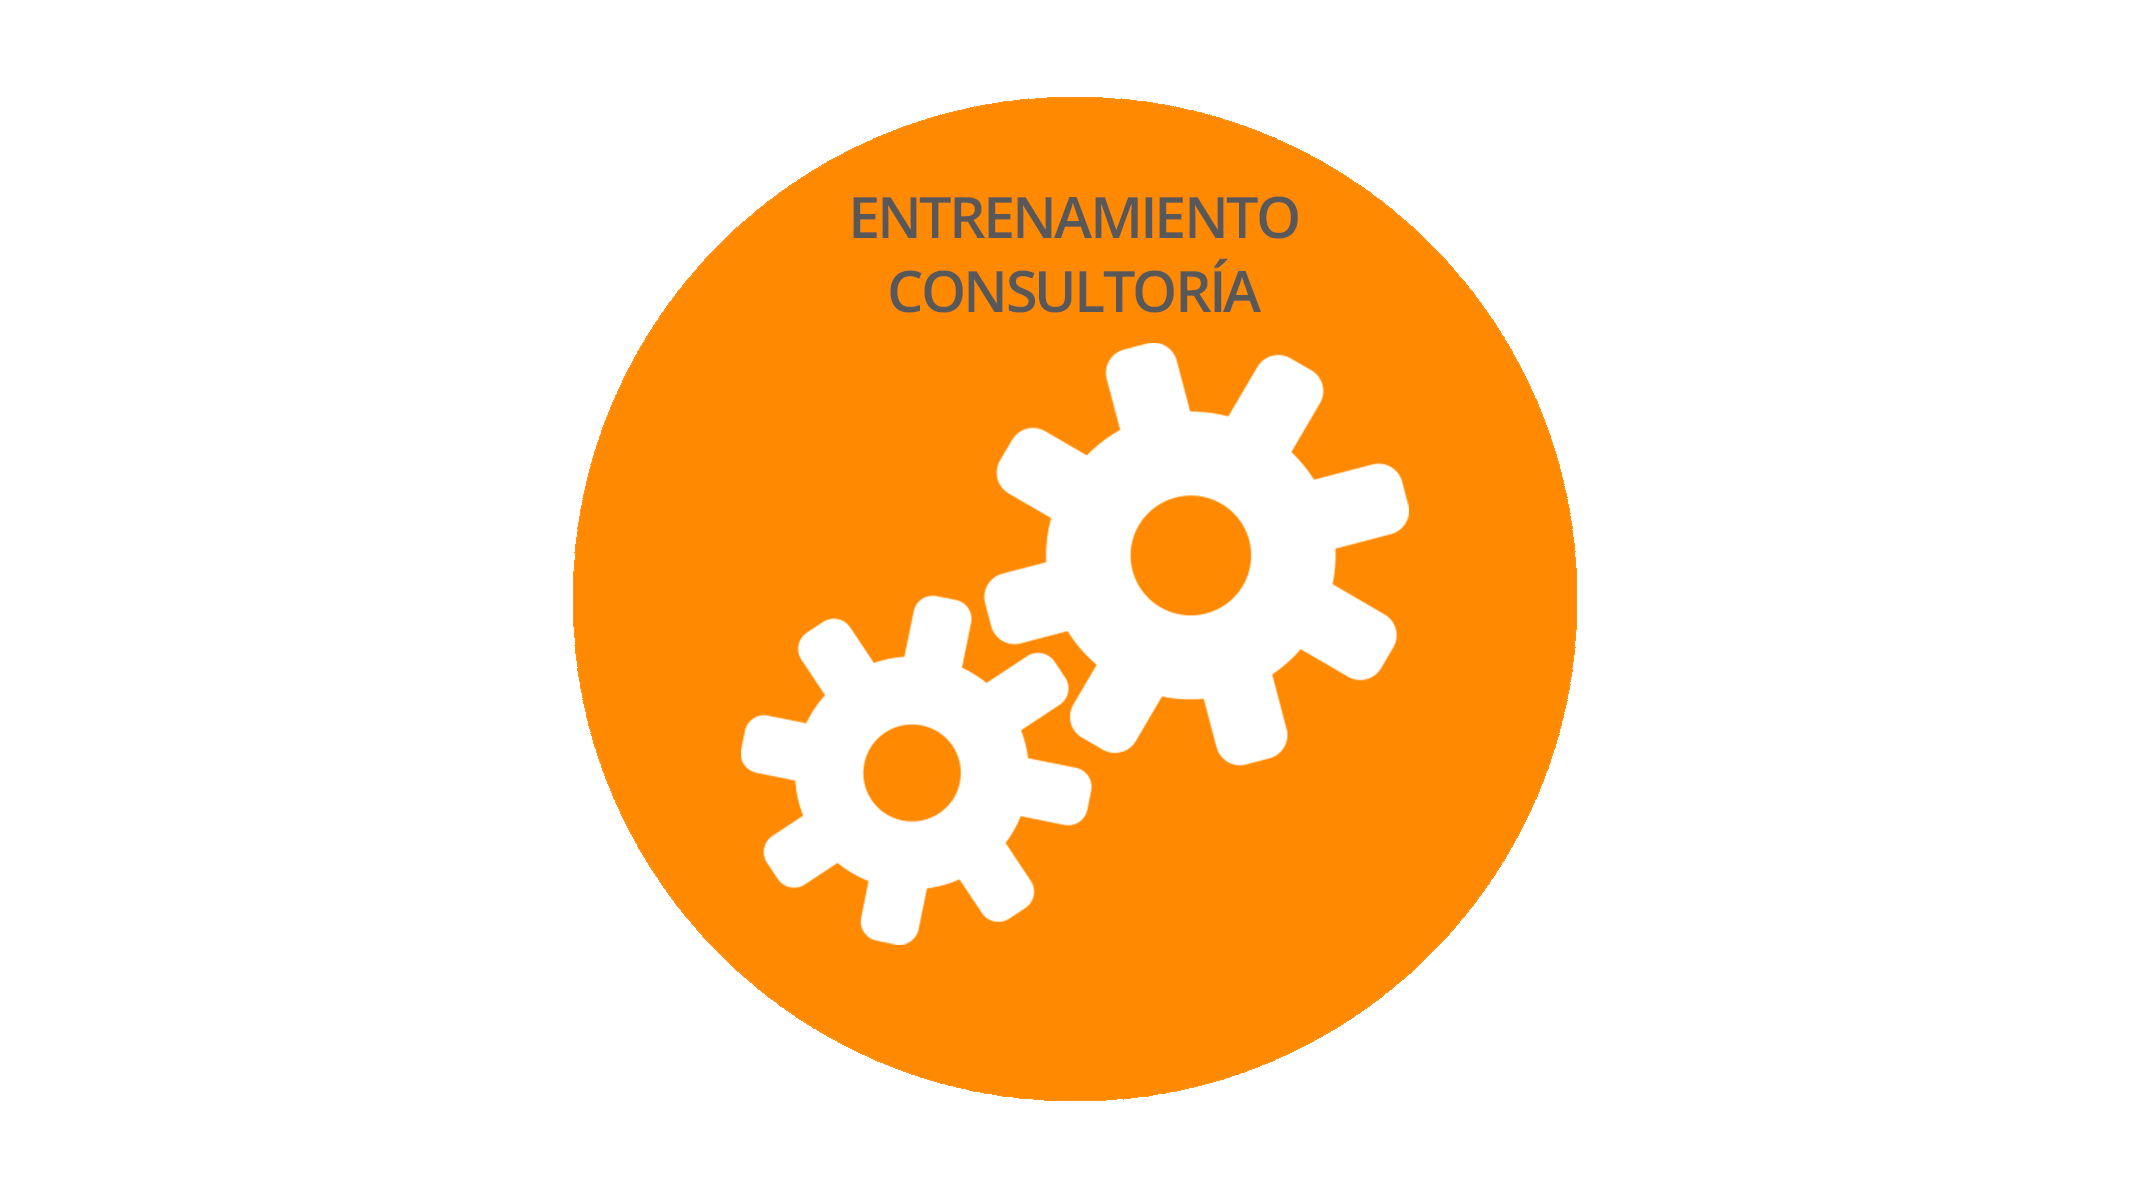 Entrenamiento consultoria de inbound marketing databranding